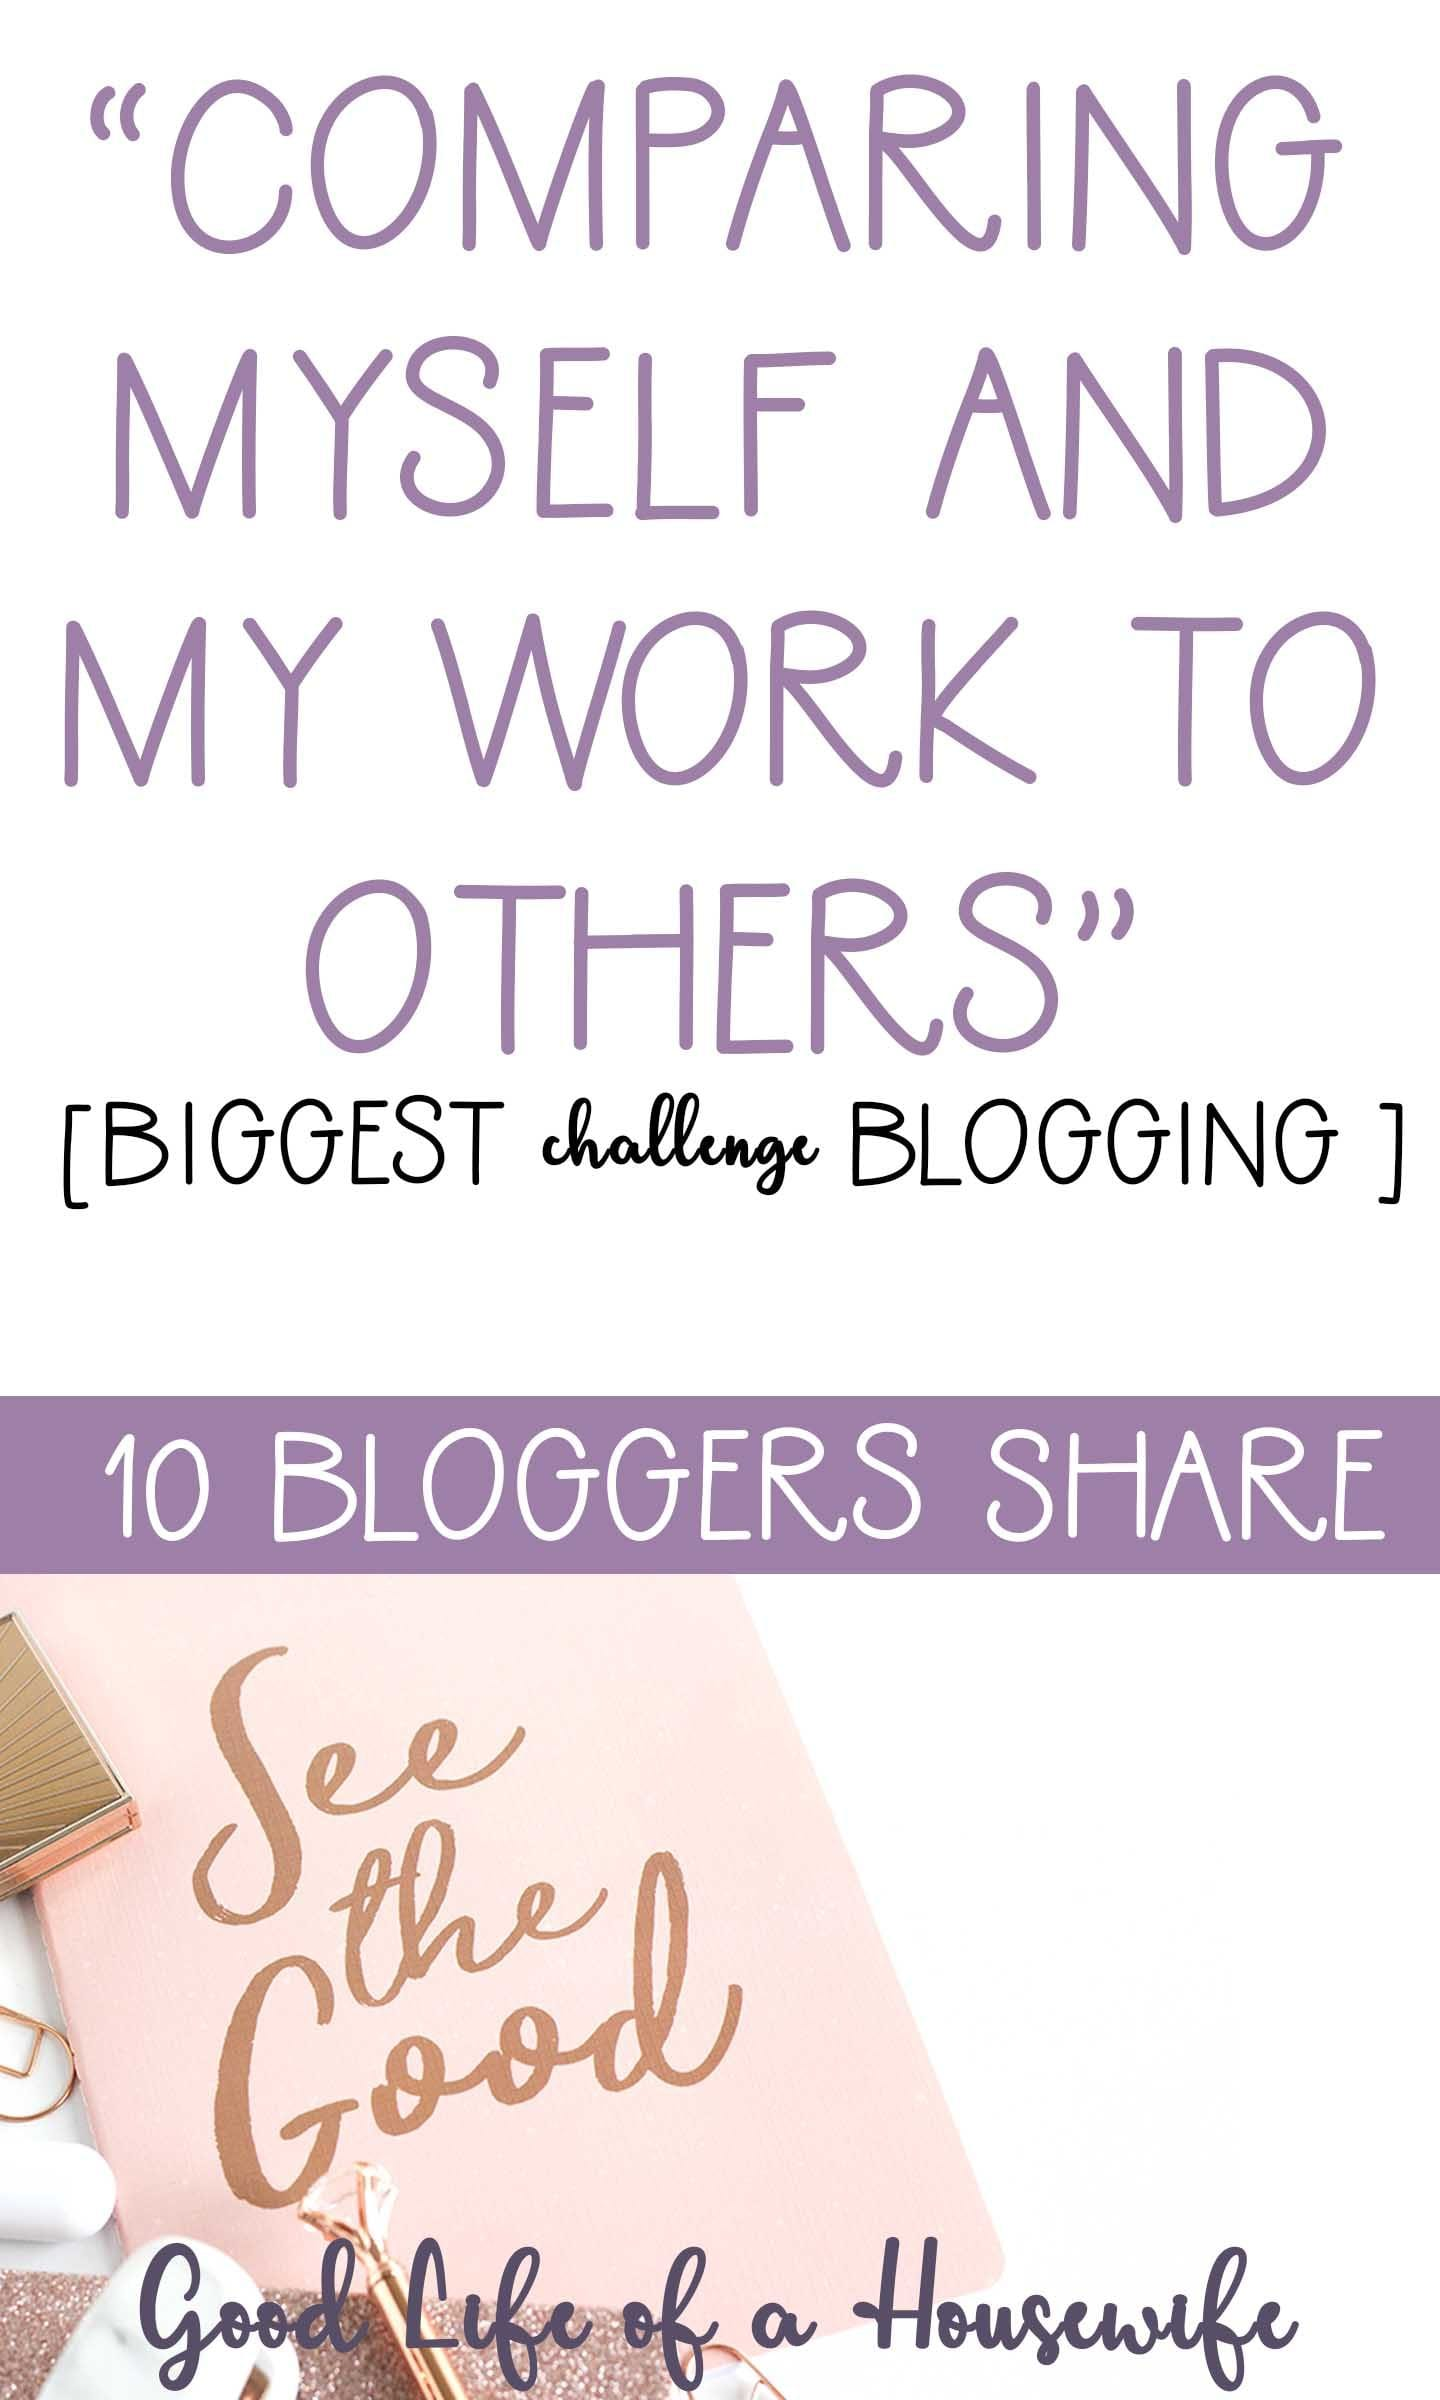 10 bloggers share their biggest challenge blogging. The challenge of comparing myself to others.